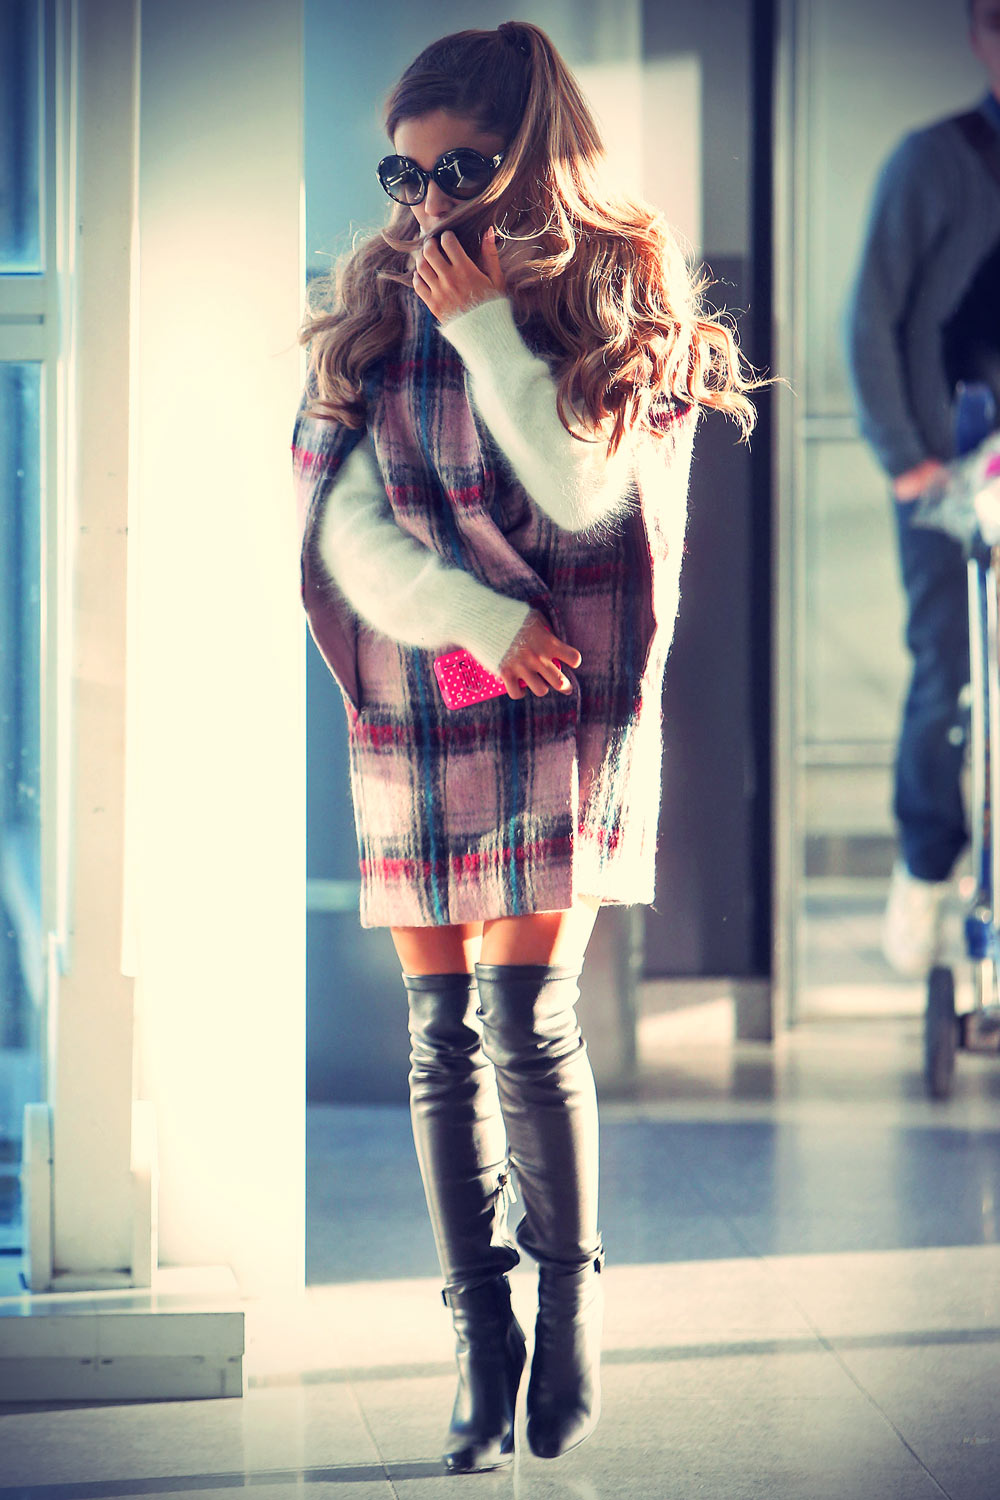 Ariana Grande arrive at JFK airport